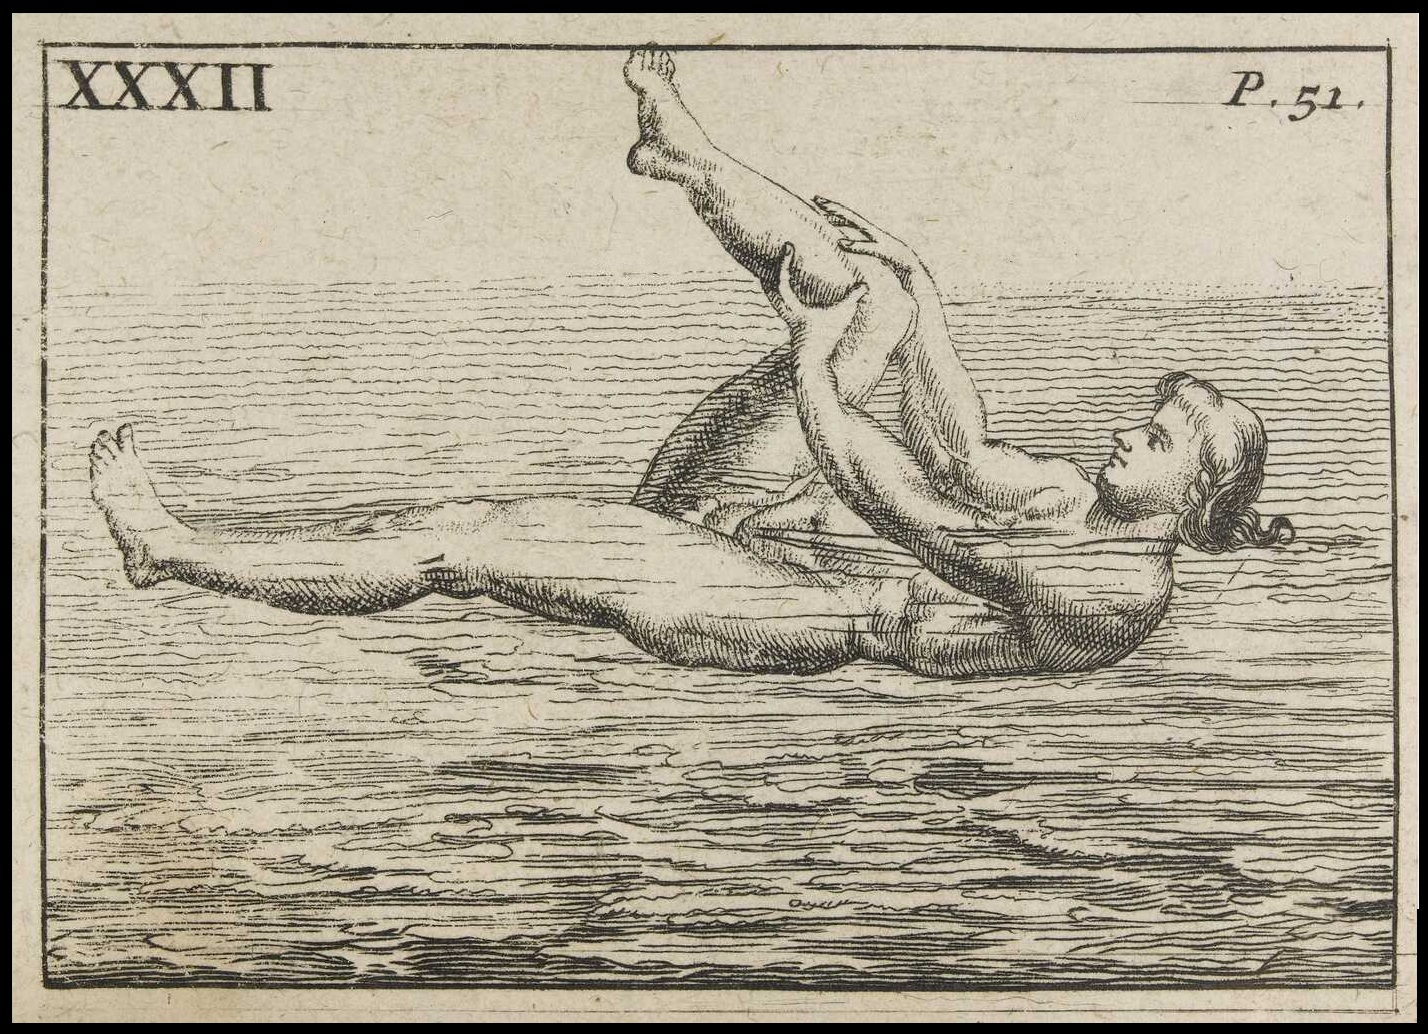 drawing of naked swimmer on back holding one leg out of water